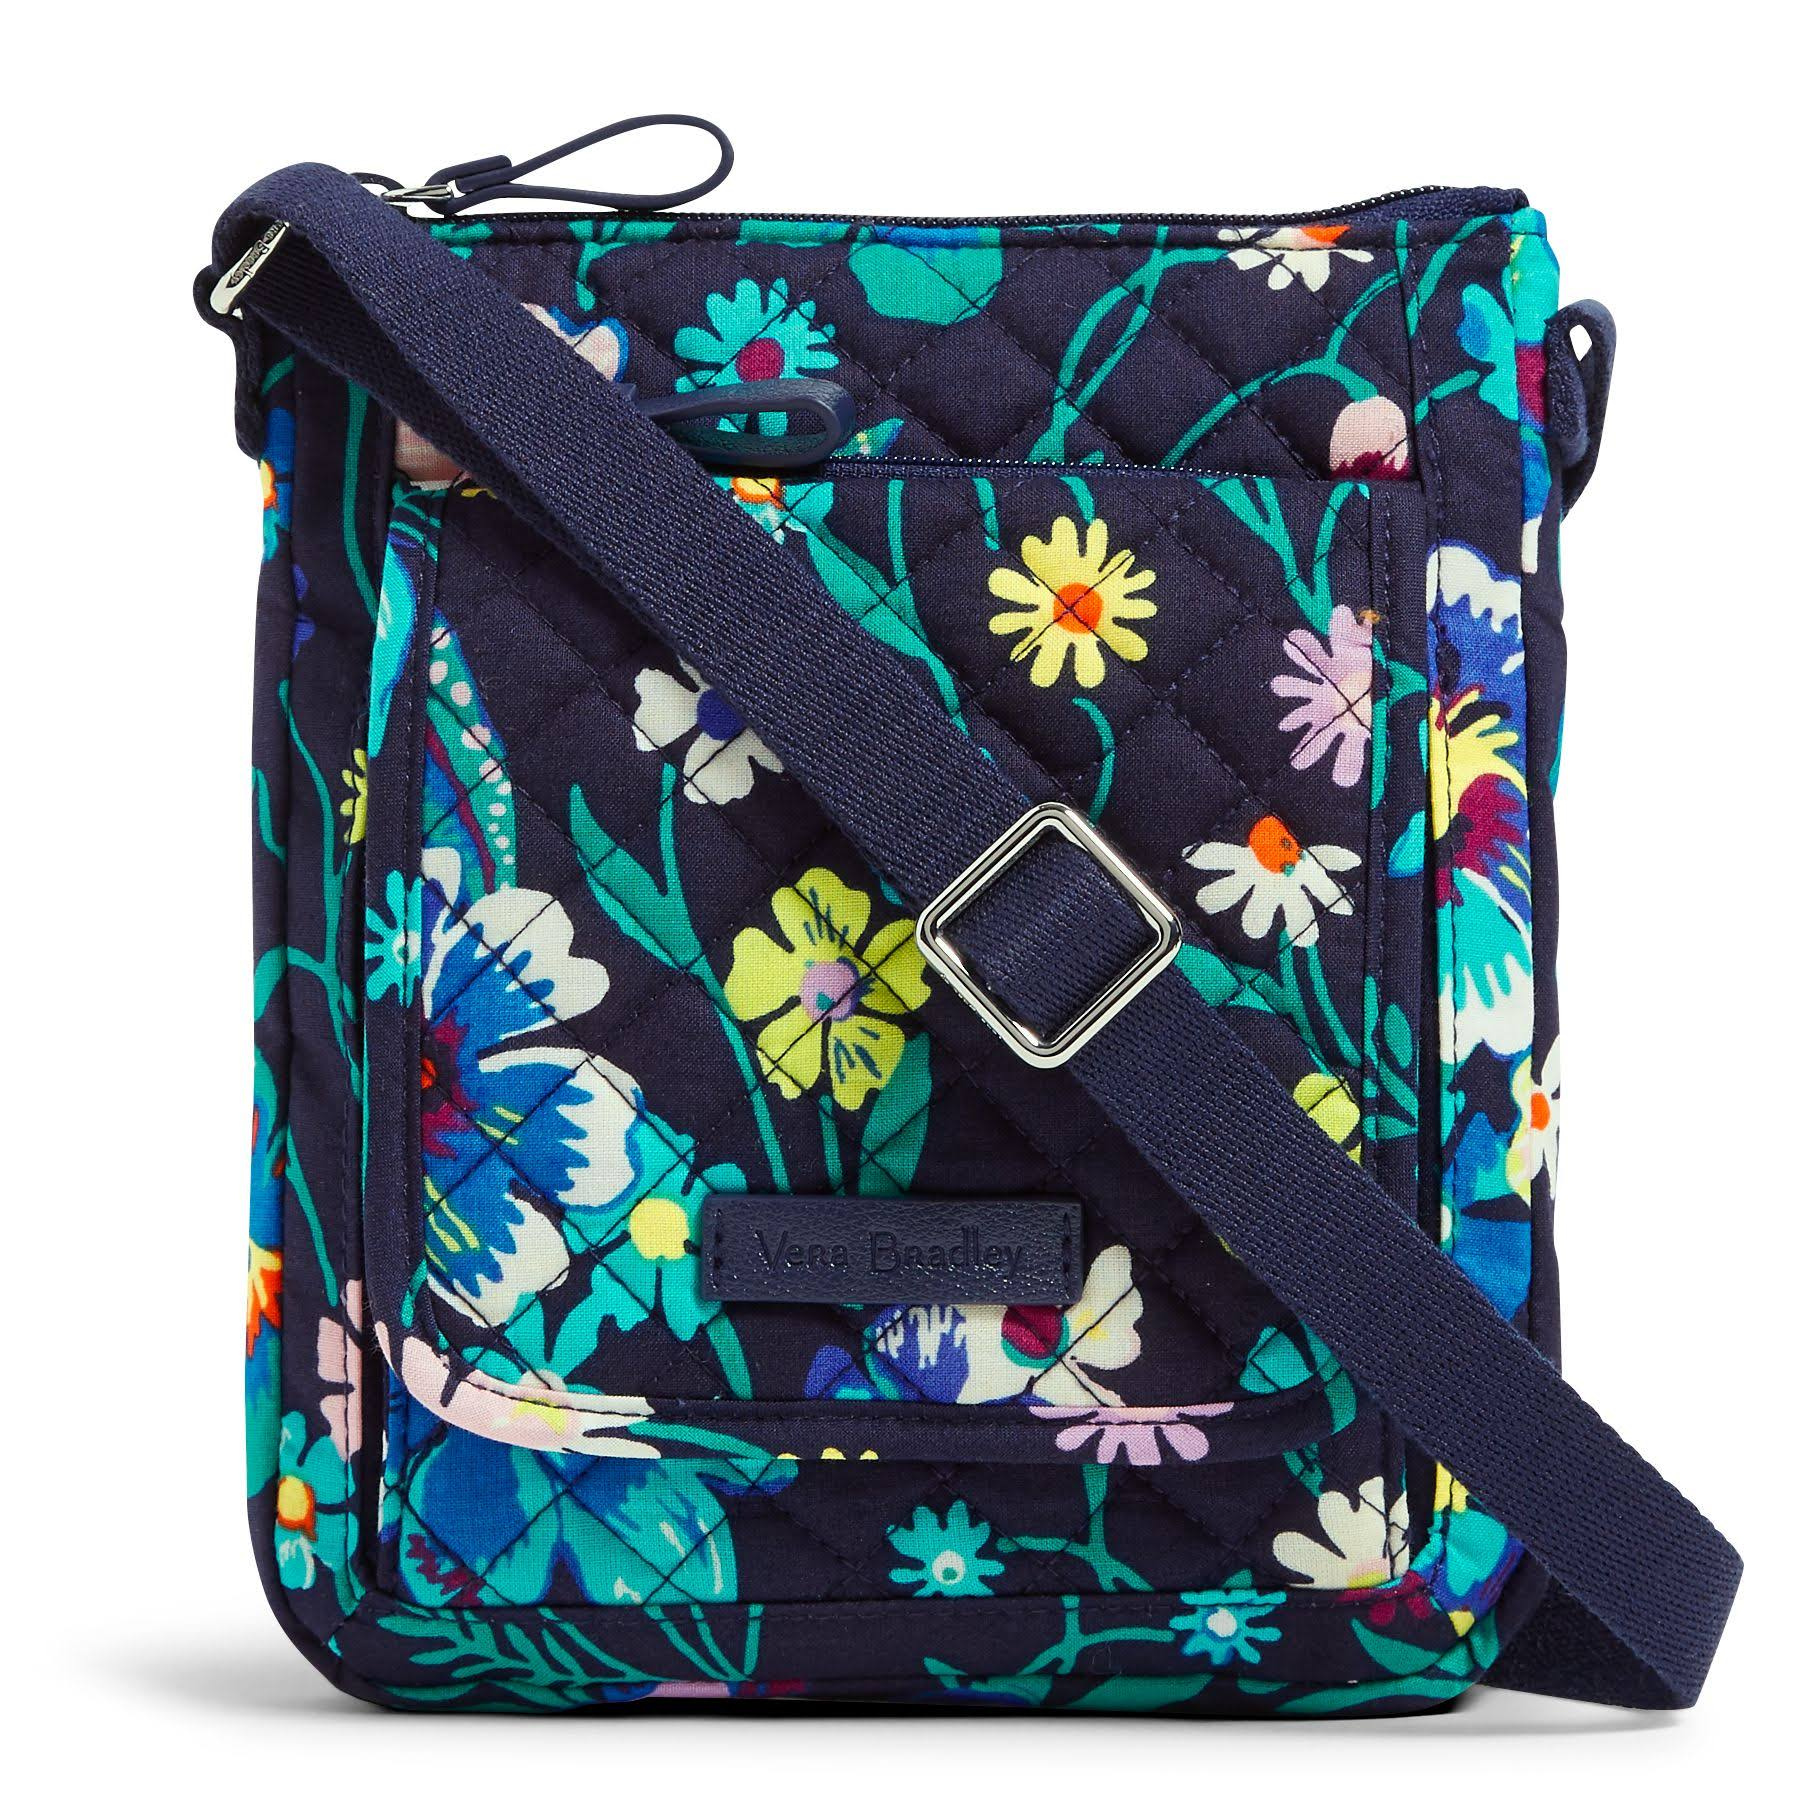 Vera Bradley Iconic RFID Mini Hipster in Moonlight Garden